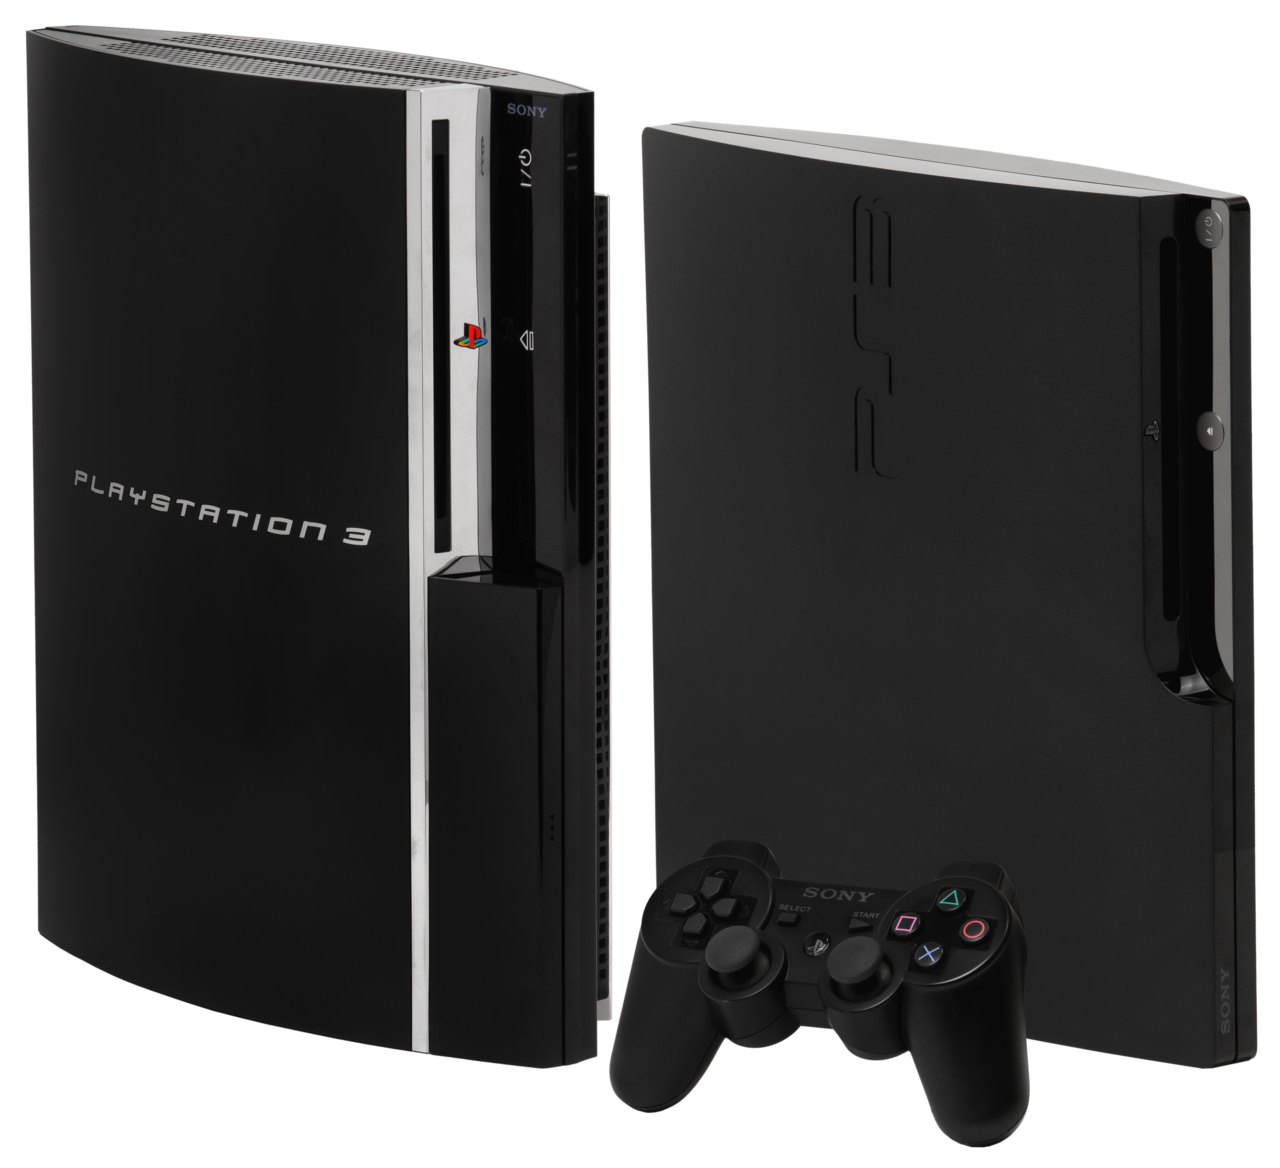 Sony PlayStation 3 file extensions